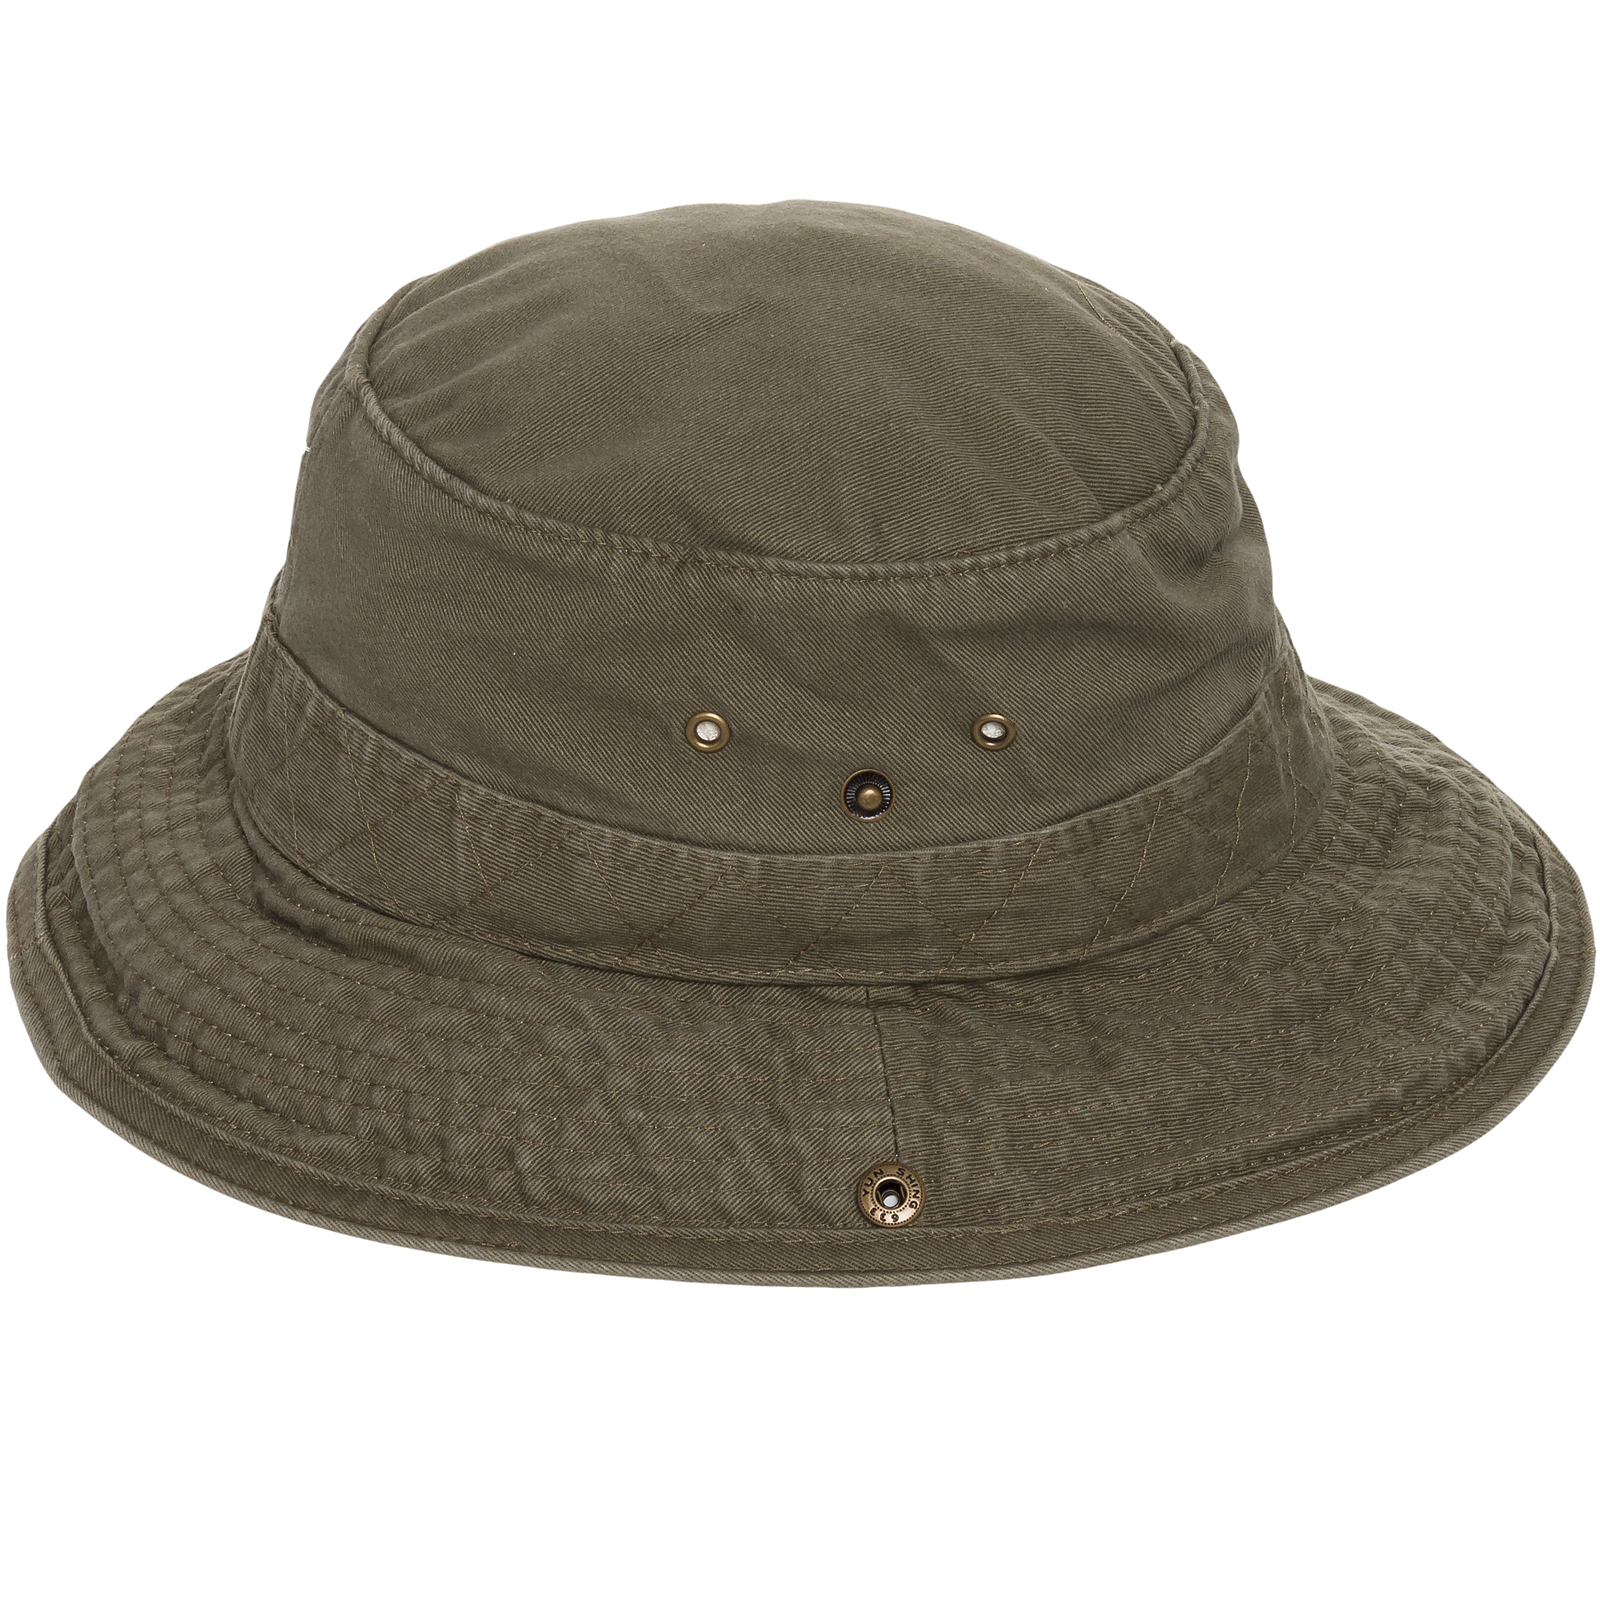 dorfman pacific Dorfman pacific men's hats : shop our collection to find the right style for you from overstockcom your online hats store get 5% in rewards with club o.